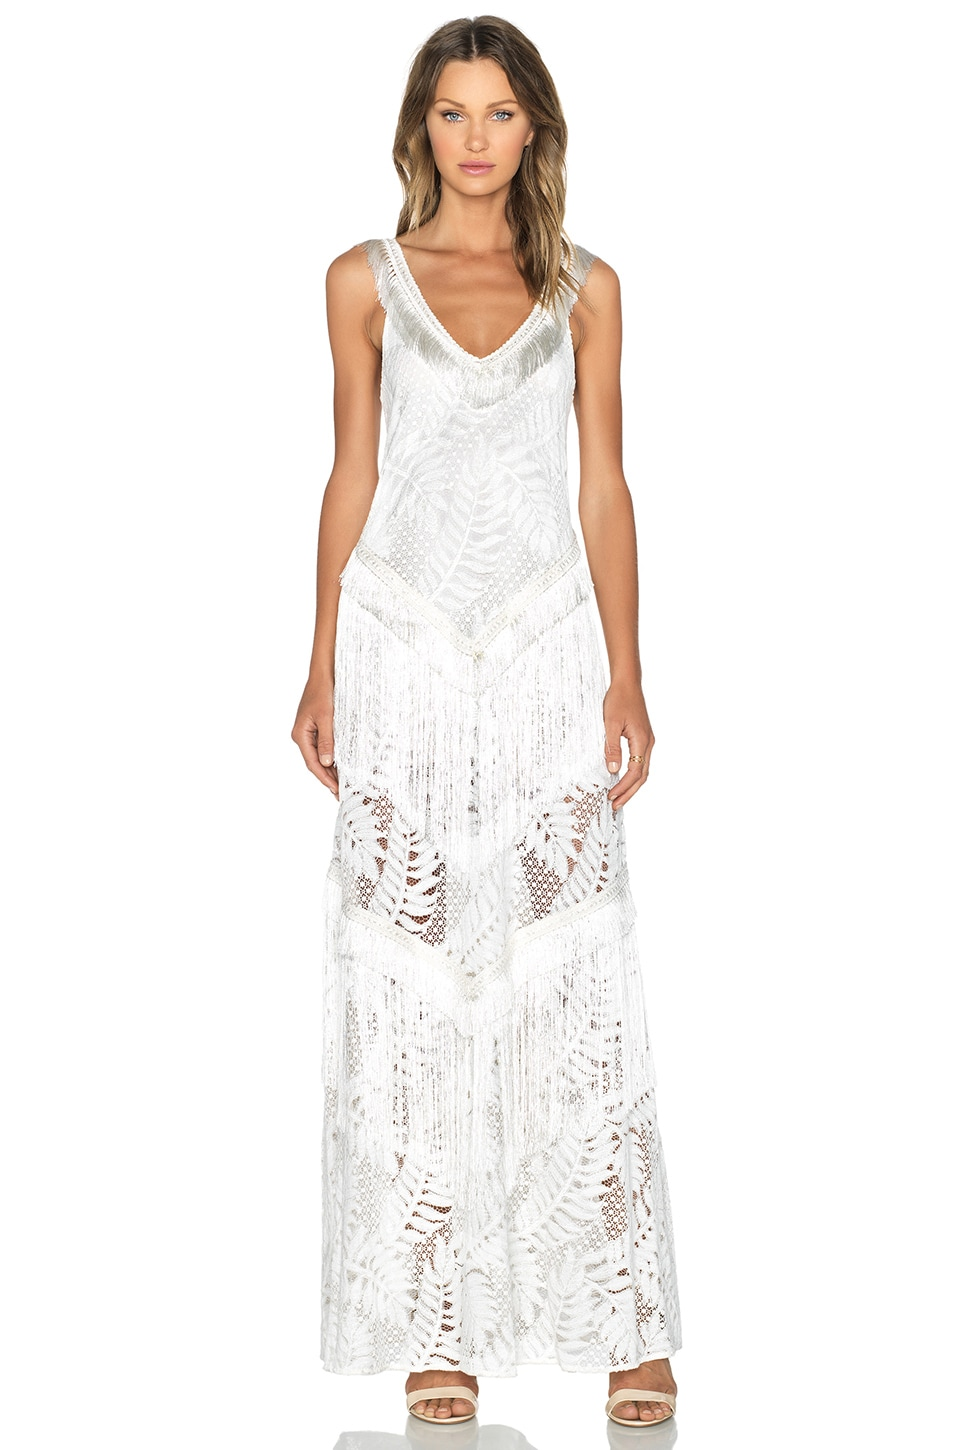 Alexis Fabienne Lace Dress in Off White